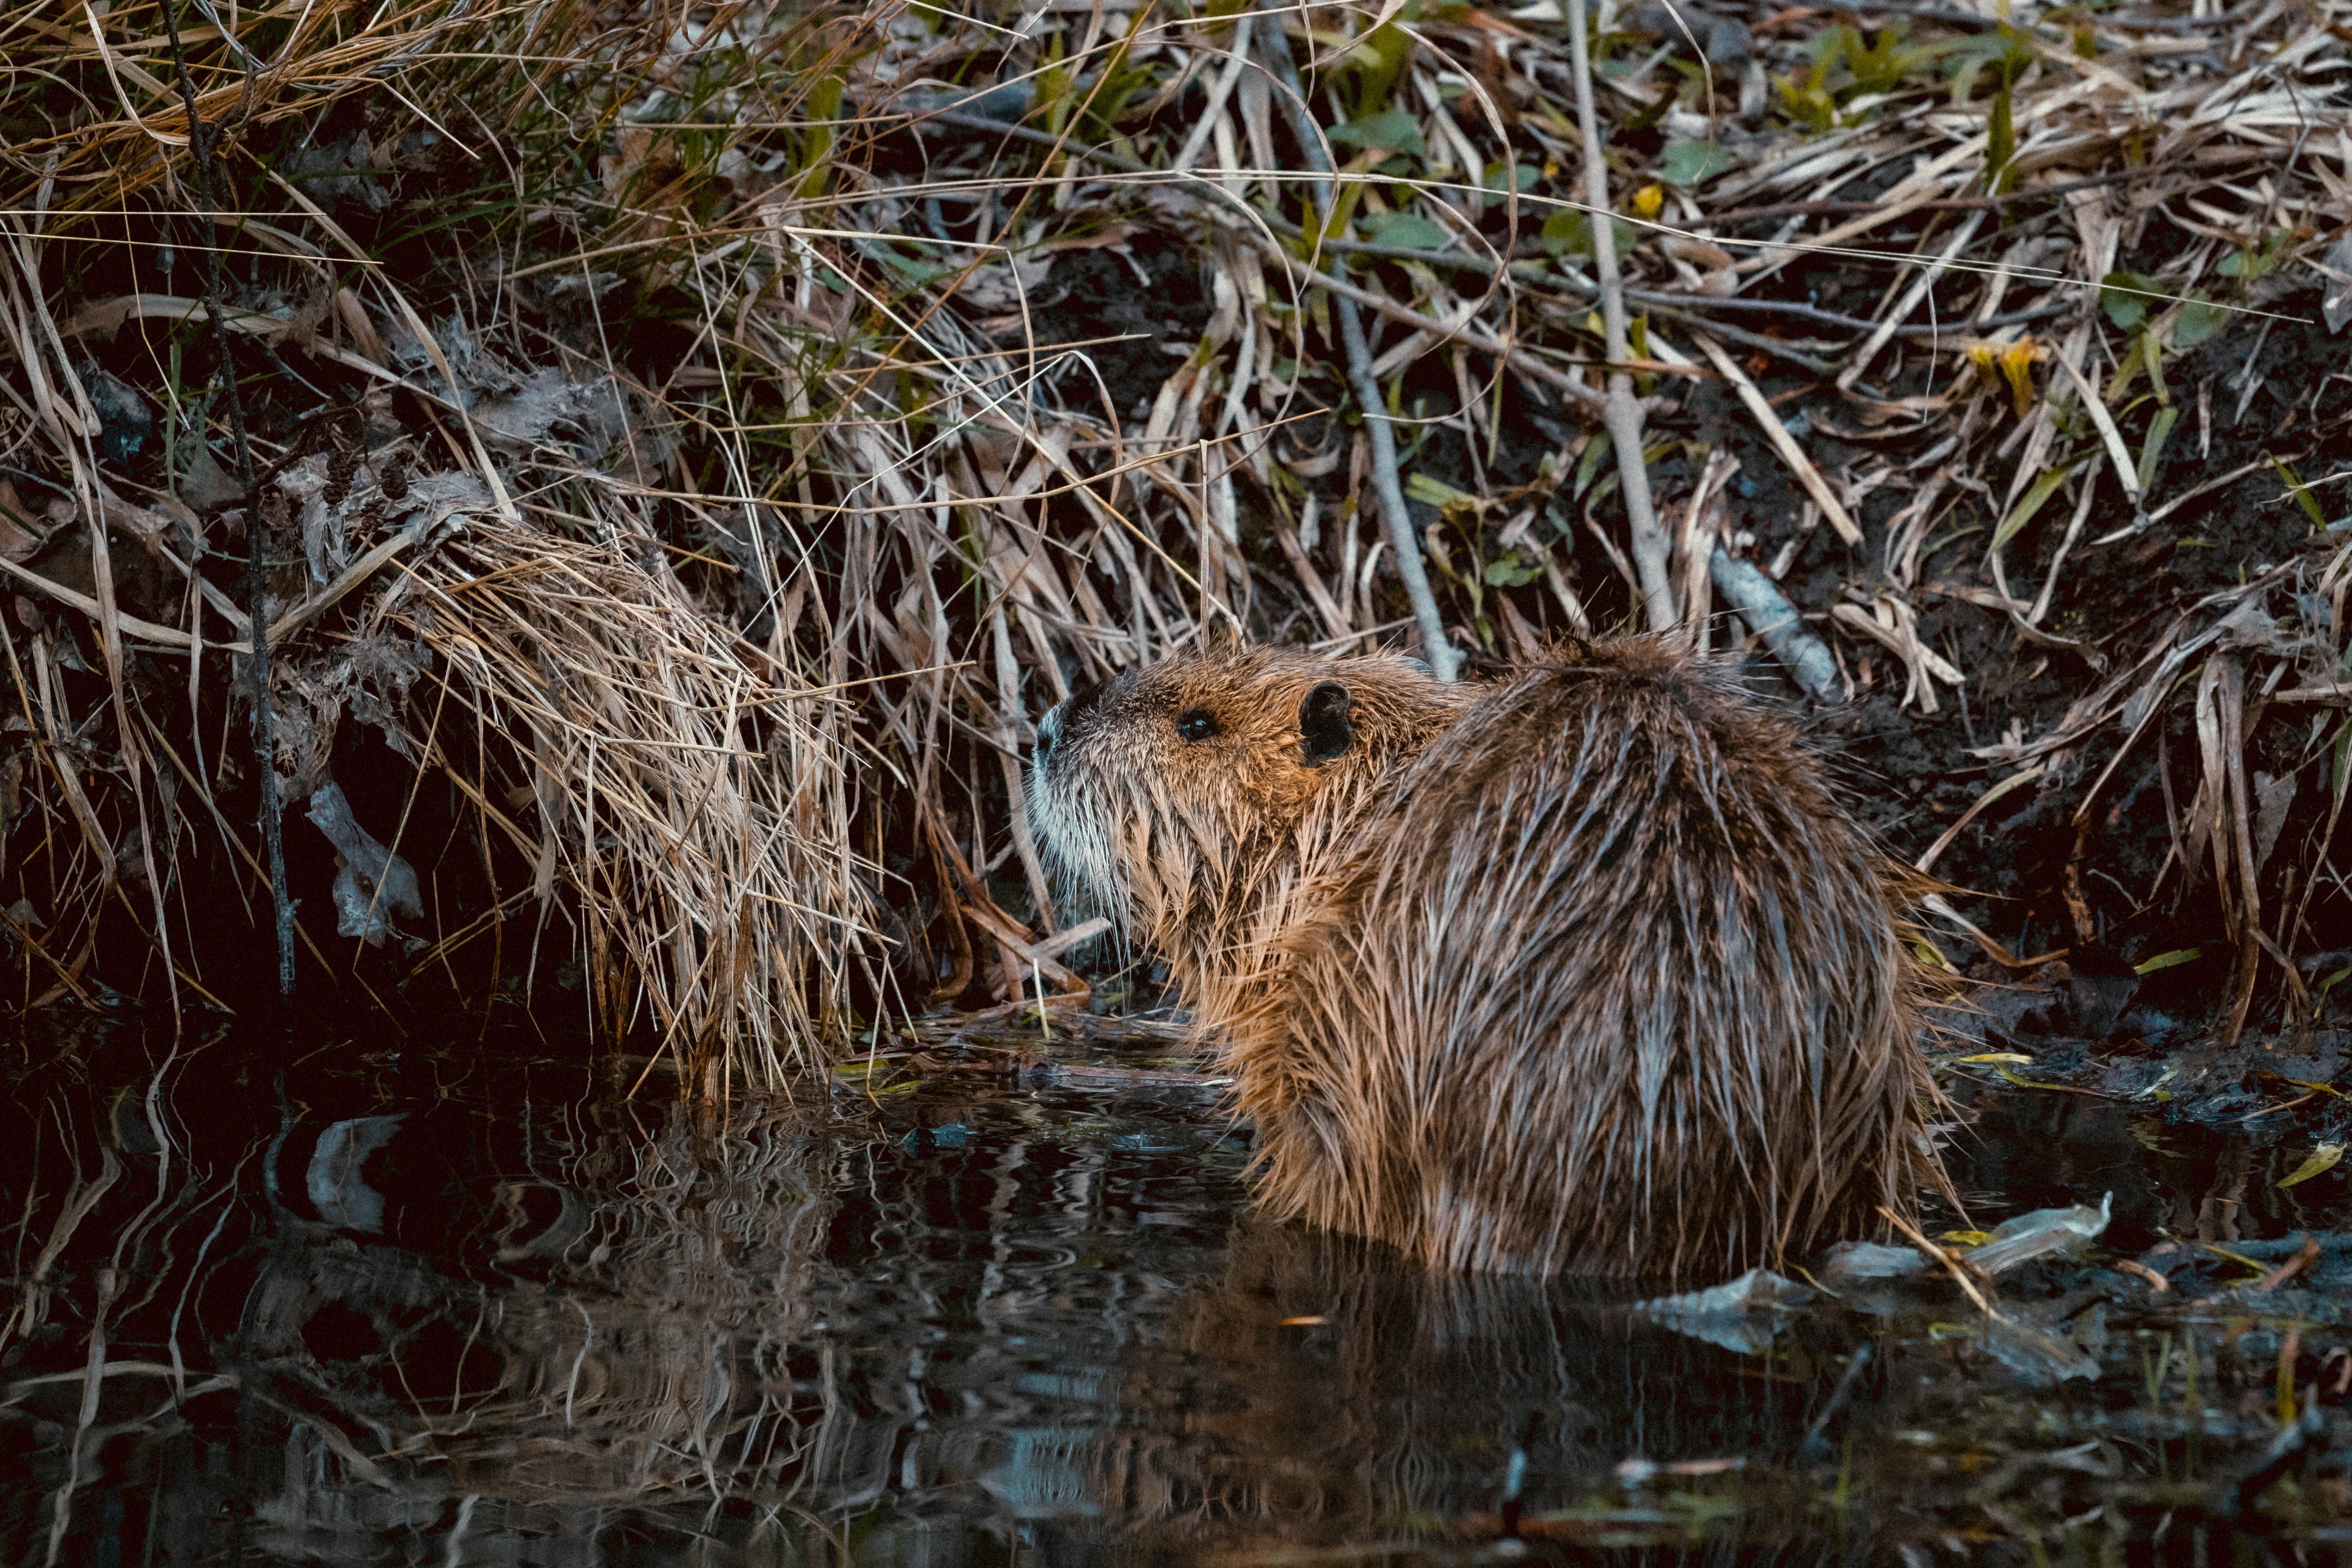 Beavers Rule the Roost at Crater Lake